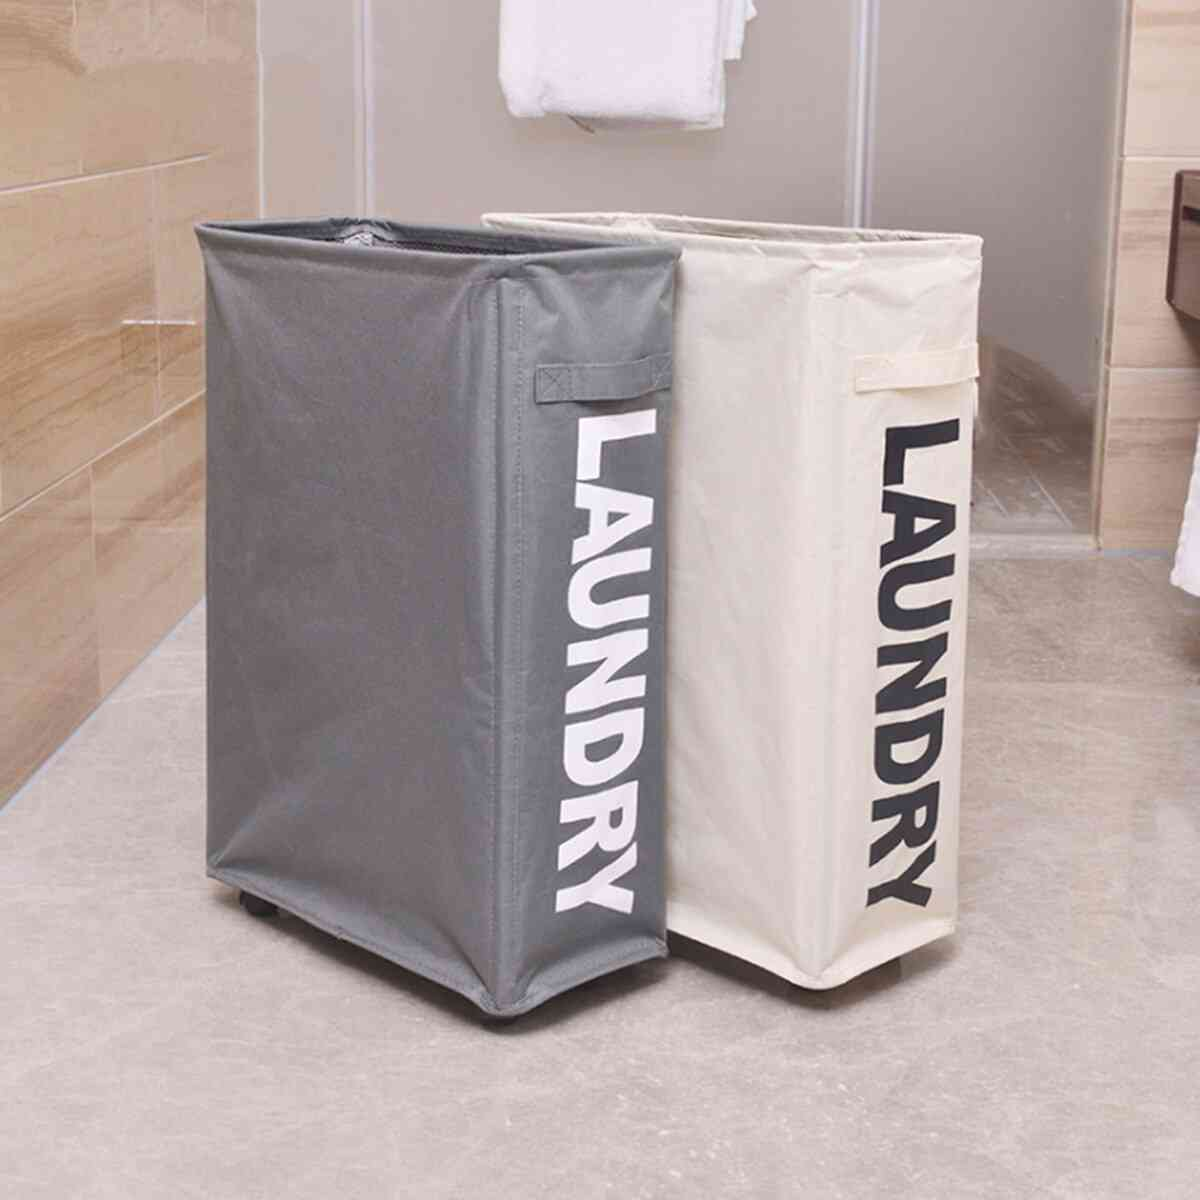 Foldable Dirty Laundry Basket With Caster Wheels